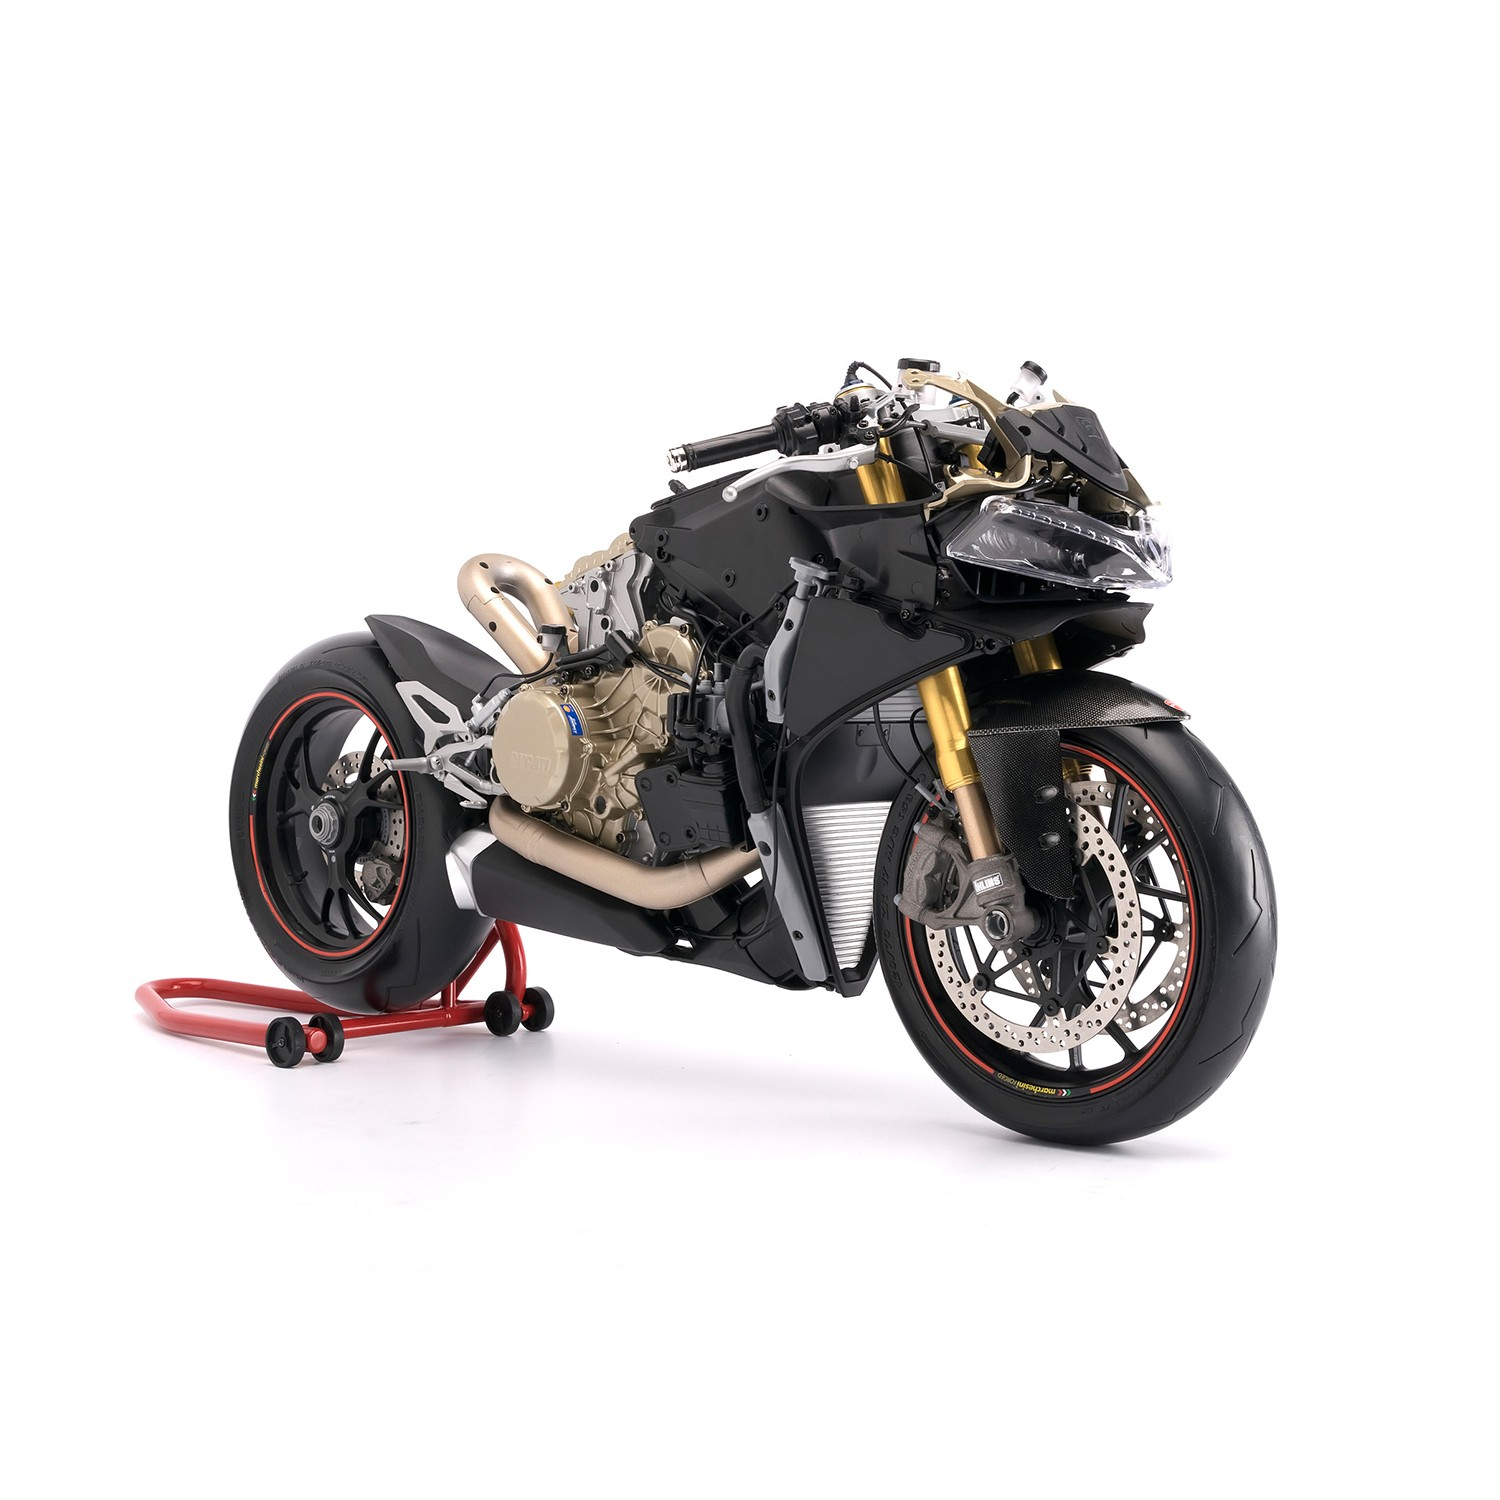 ducati superbike panigale s 1 4 model bike full kit modelspace. Black Bedroom Furniture Sets. Home Design Ideas